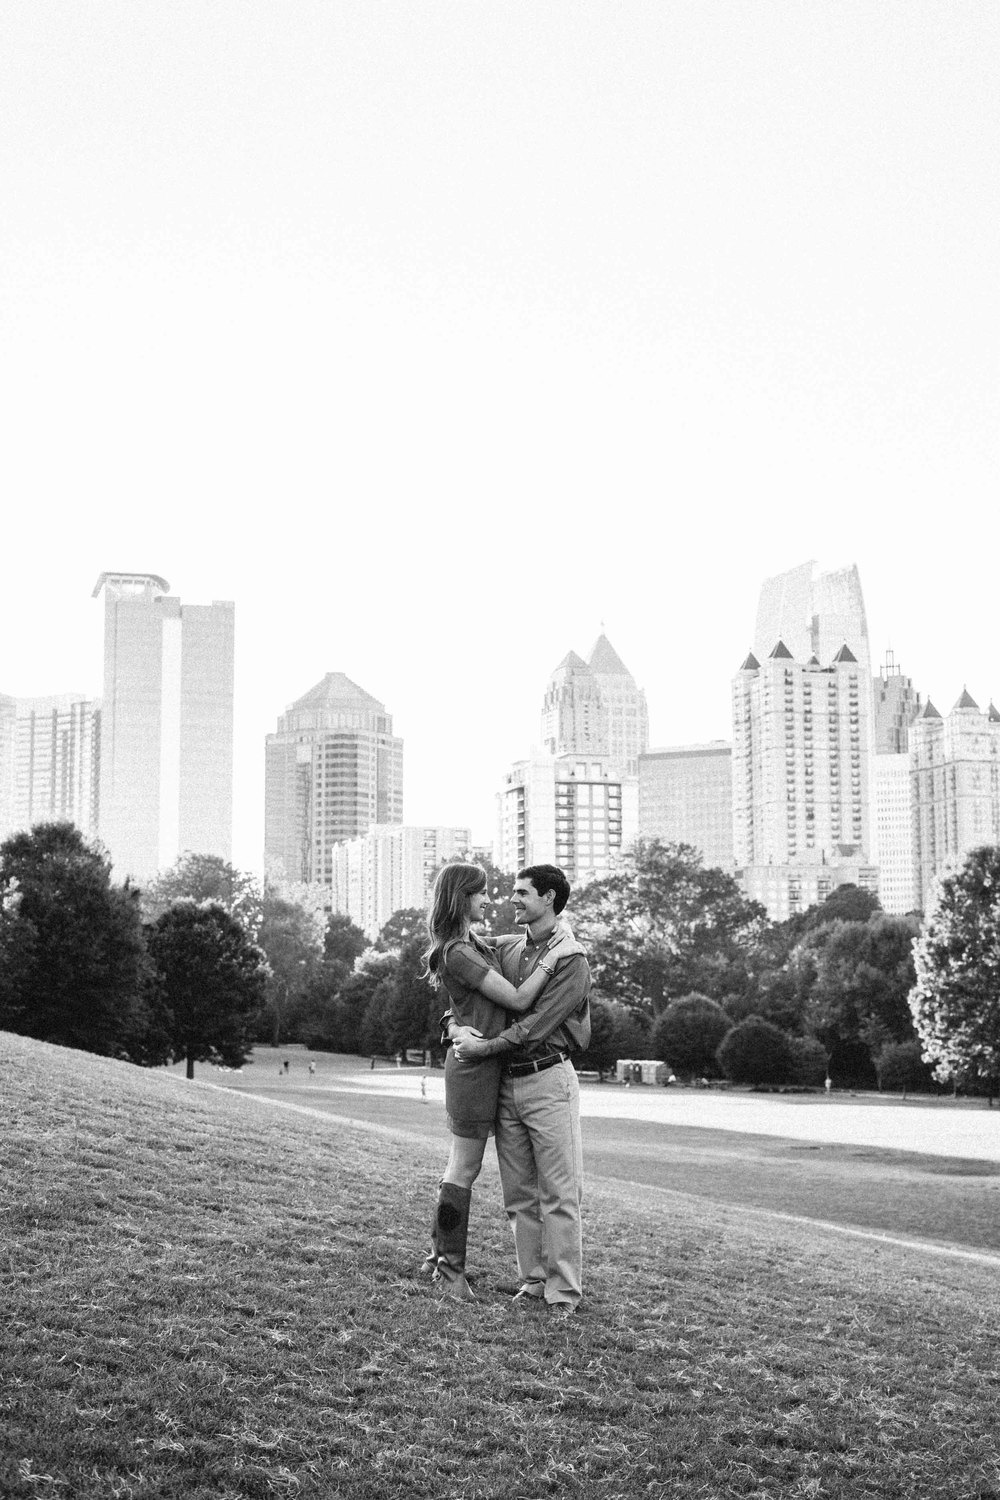 jimmy-rowalt-atlanta-engagement-photography-003.jpg